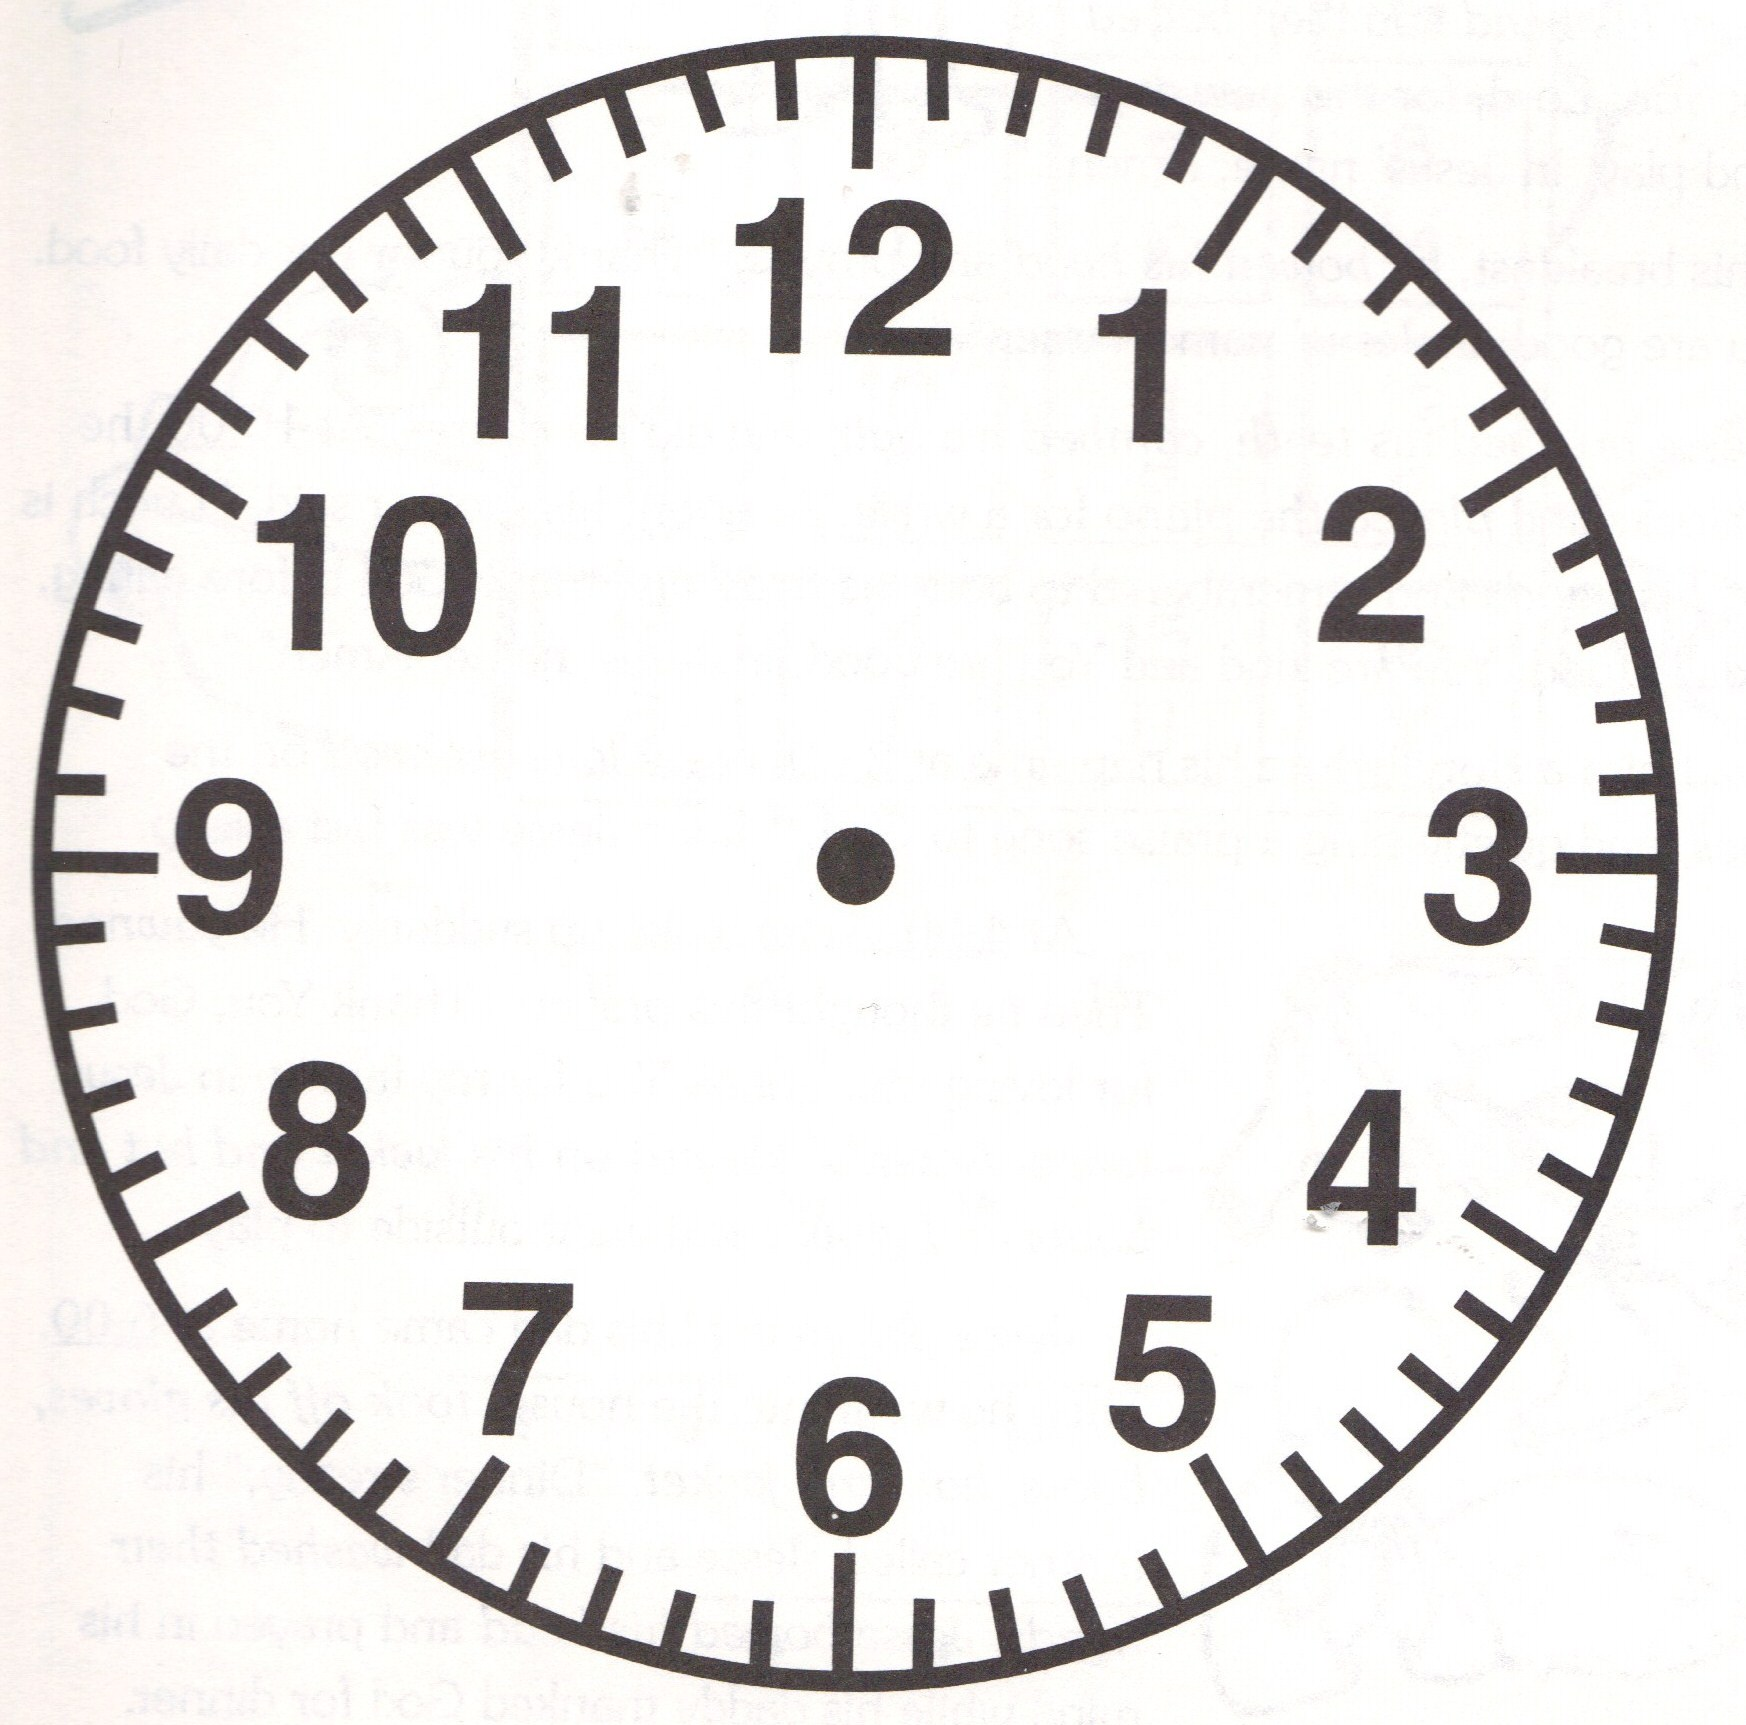 Free Blank Analog Clock, Download Free Clip Art, Free Clip.